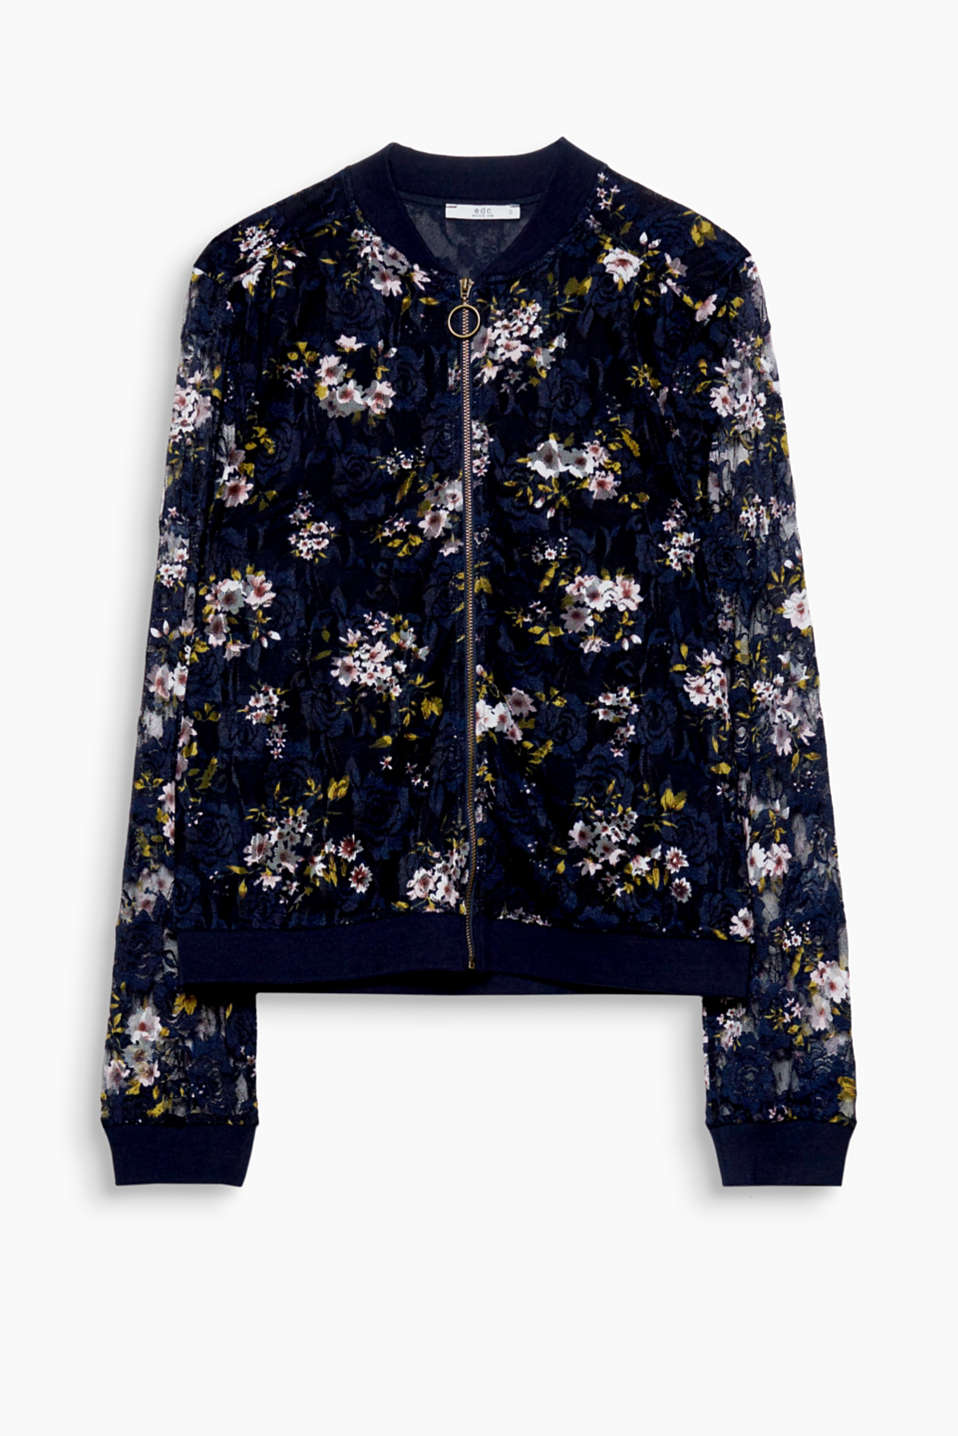 The new bomber jackets are so feminine like this one made of delicate lace with an all-over floral print!